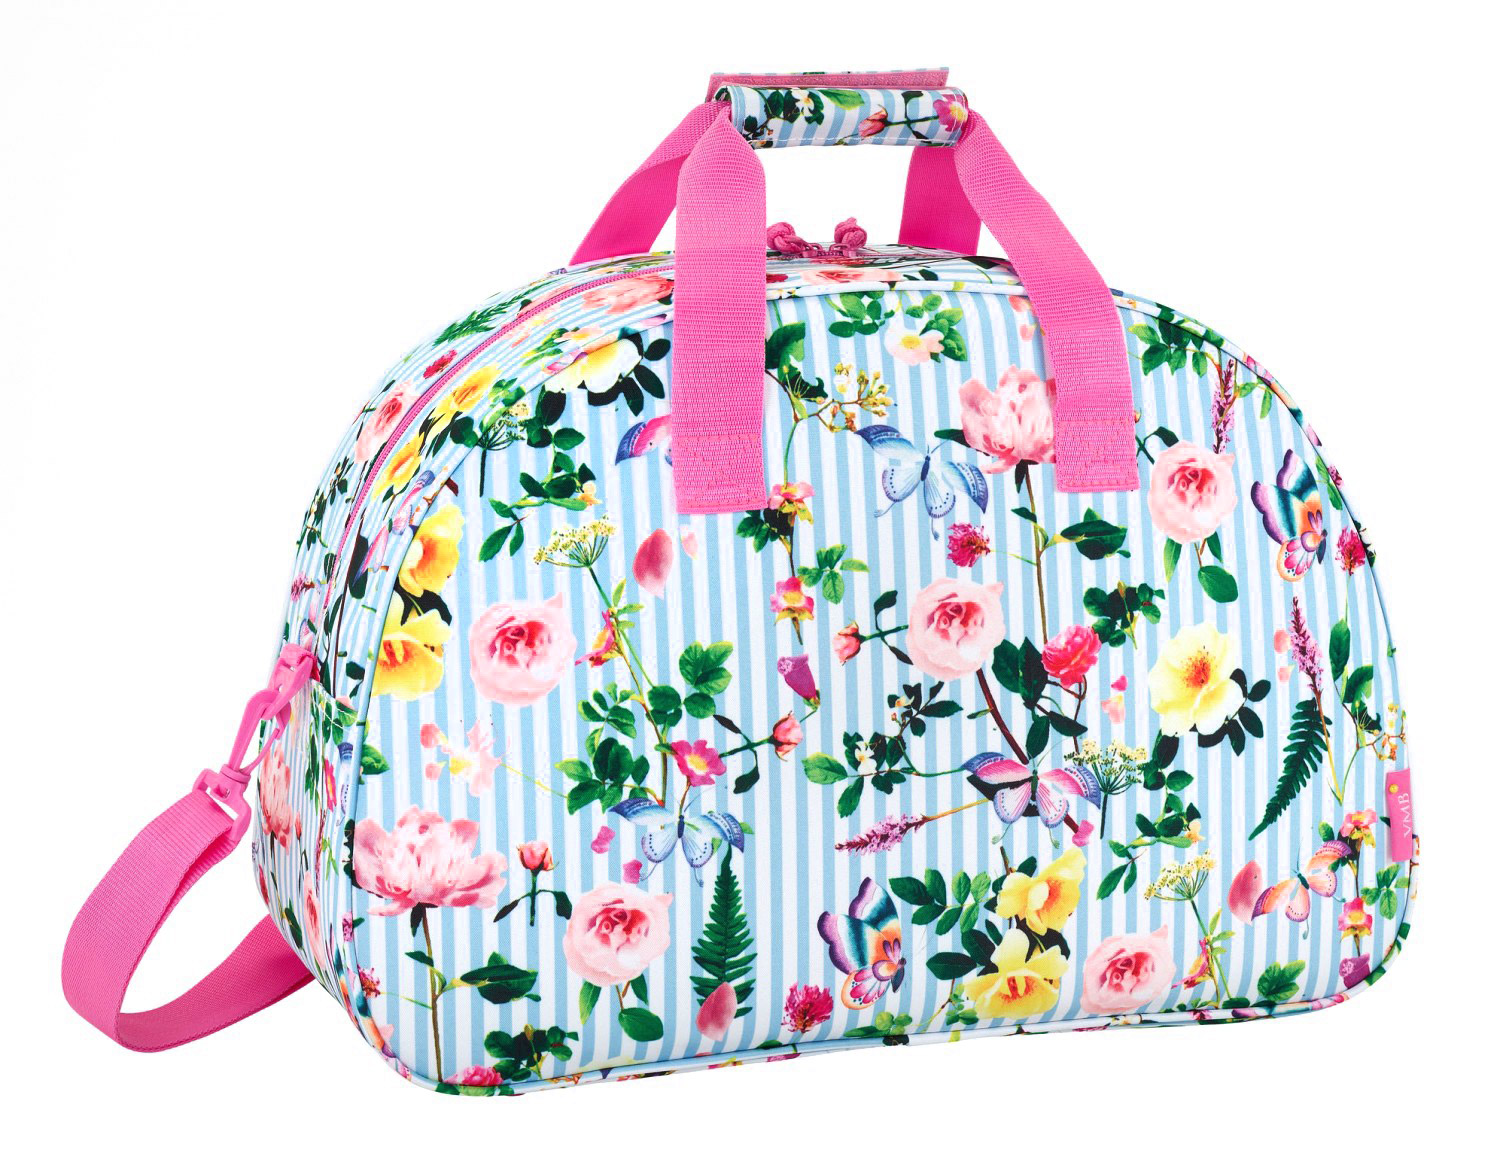 "VICKY MARTIN BERROCAL ""GARDEN"" Travel Sports Bag 48 cm  – image 2"